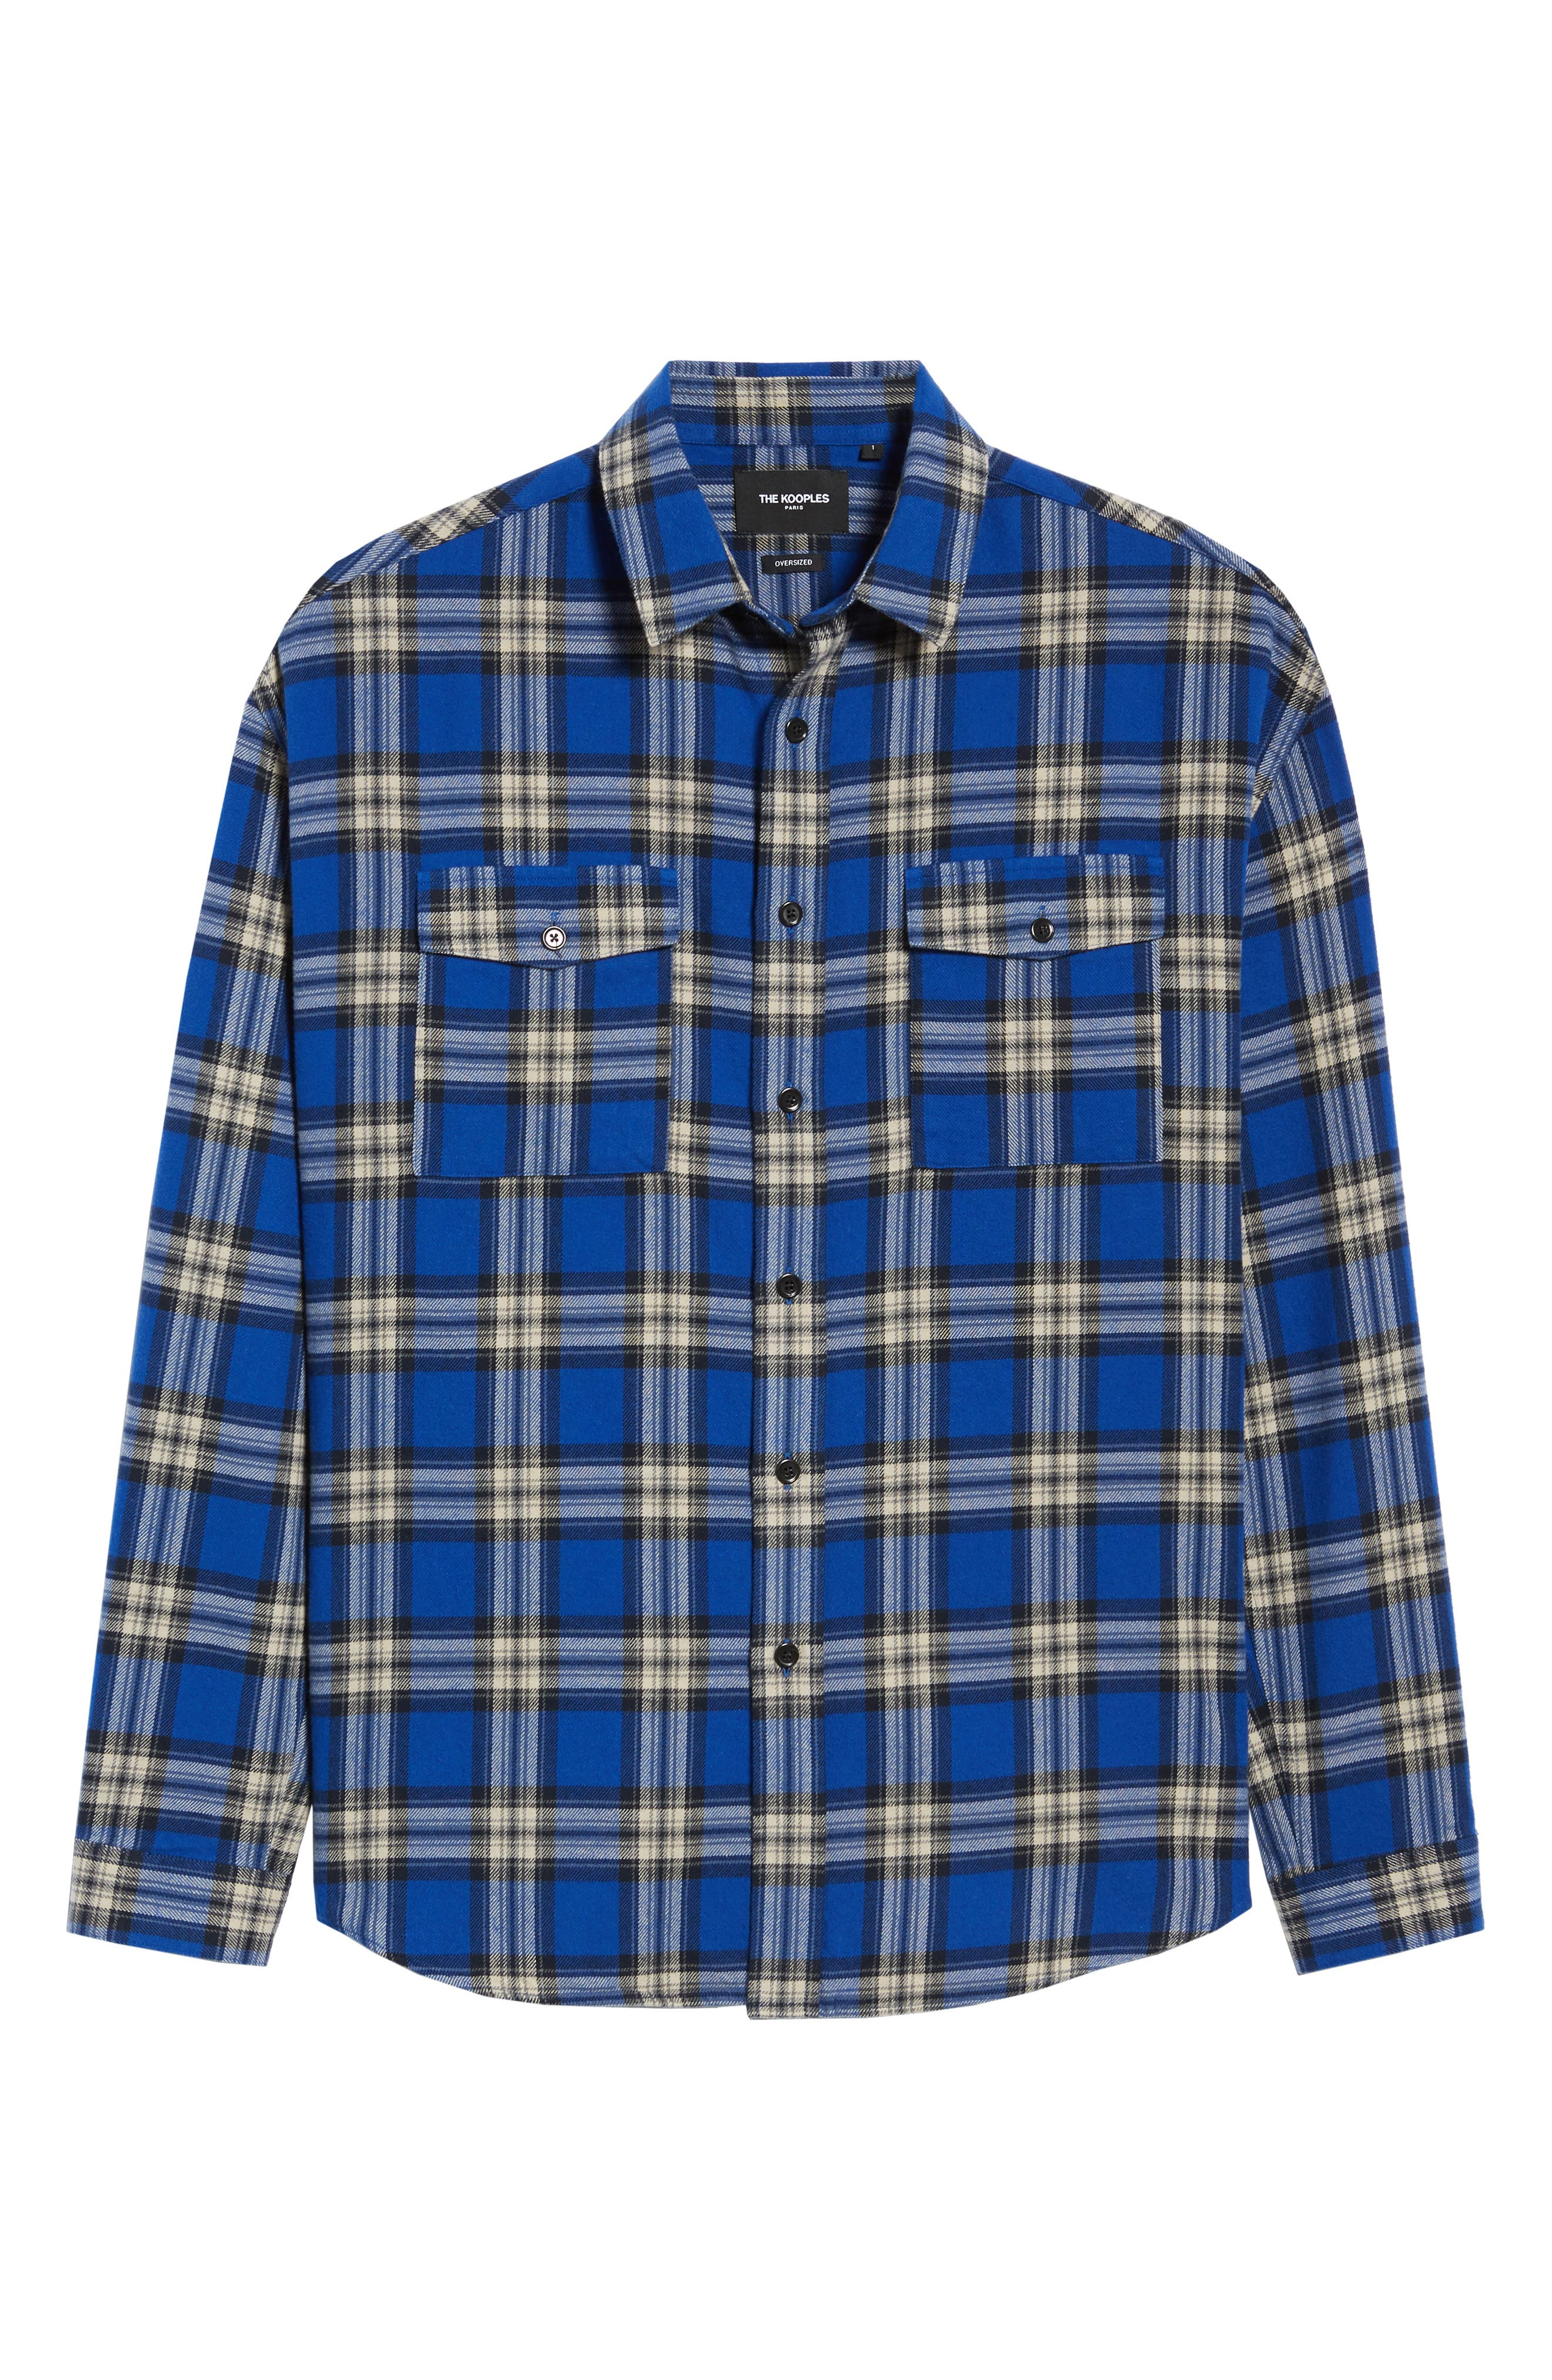 THE KOOPLES,                             Check Flannel Shirt,                             Alternate thumbnail 5, color,                             400